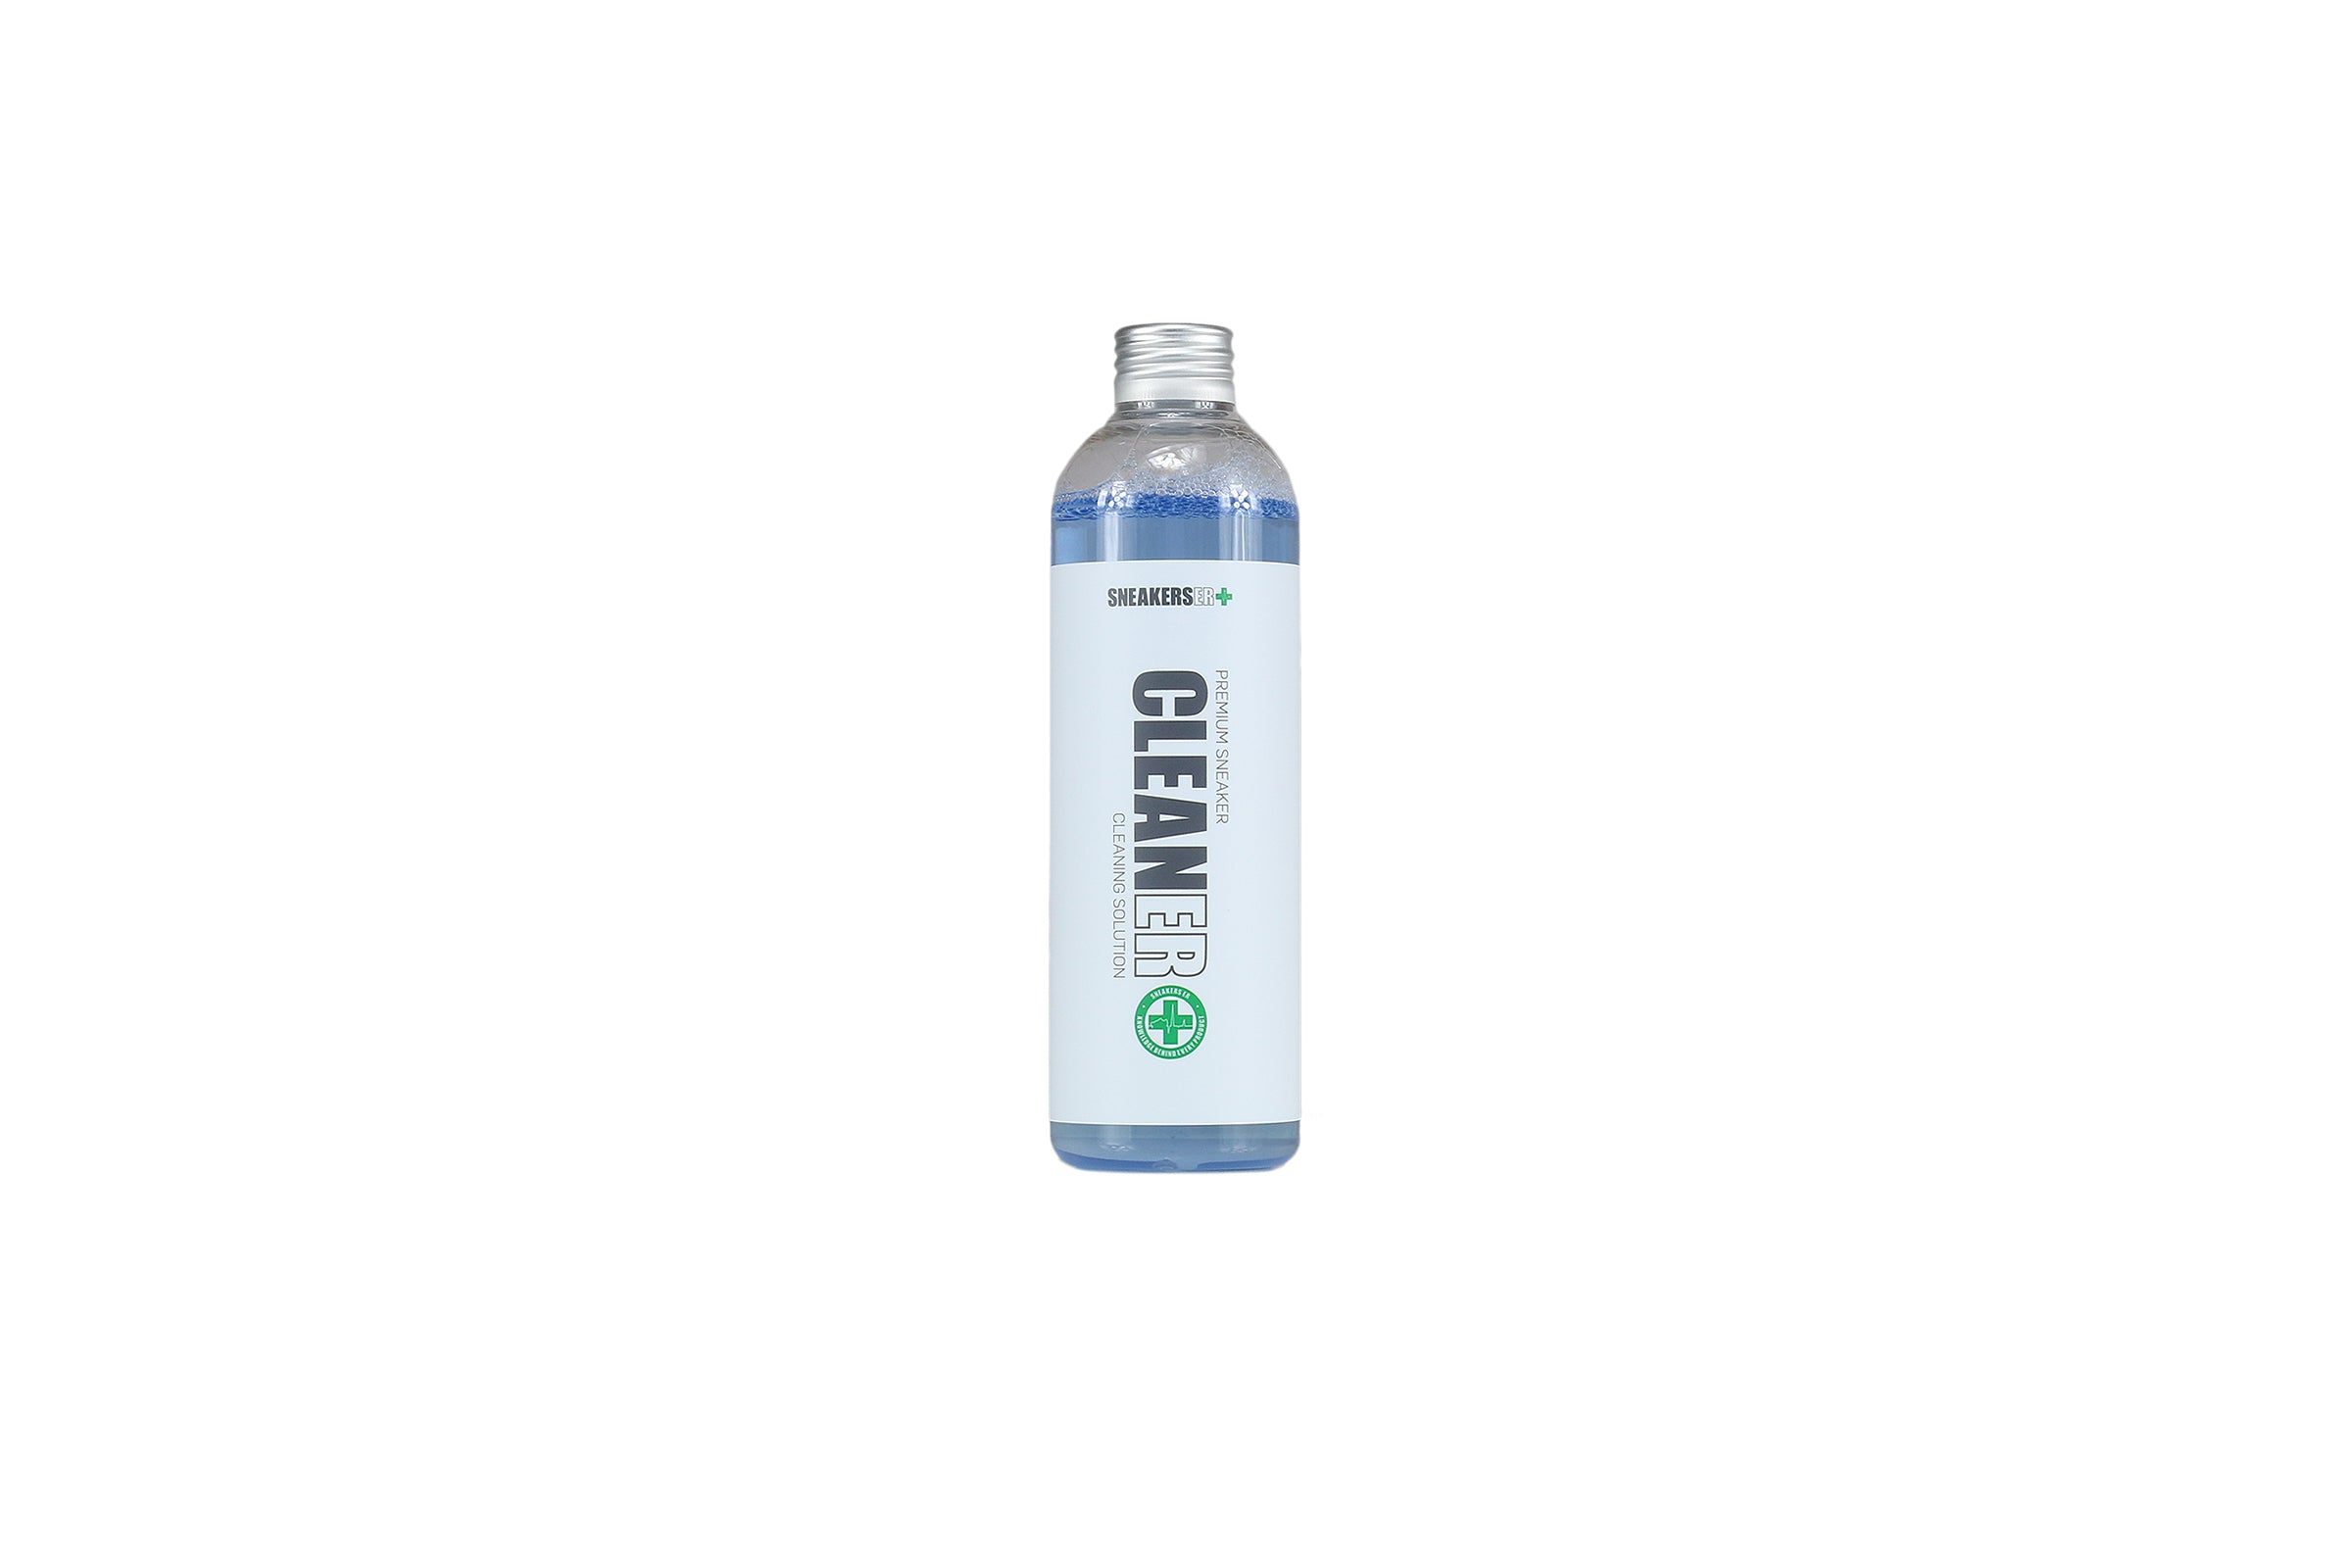 Sneakers ER Cleaning Solution 250ml